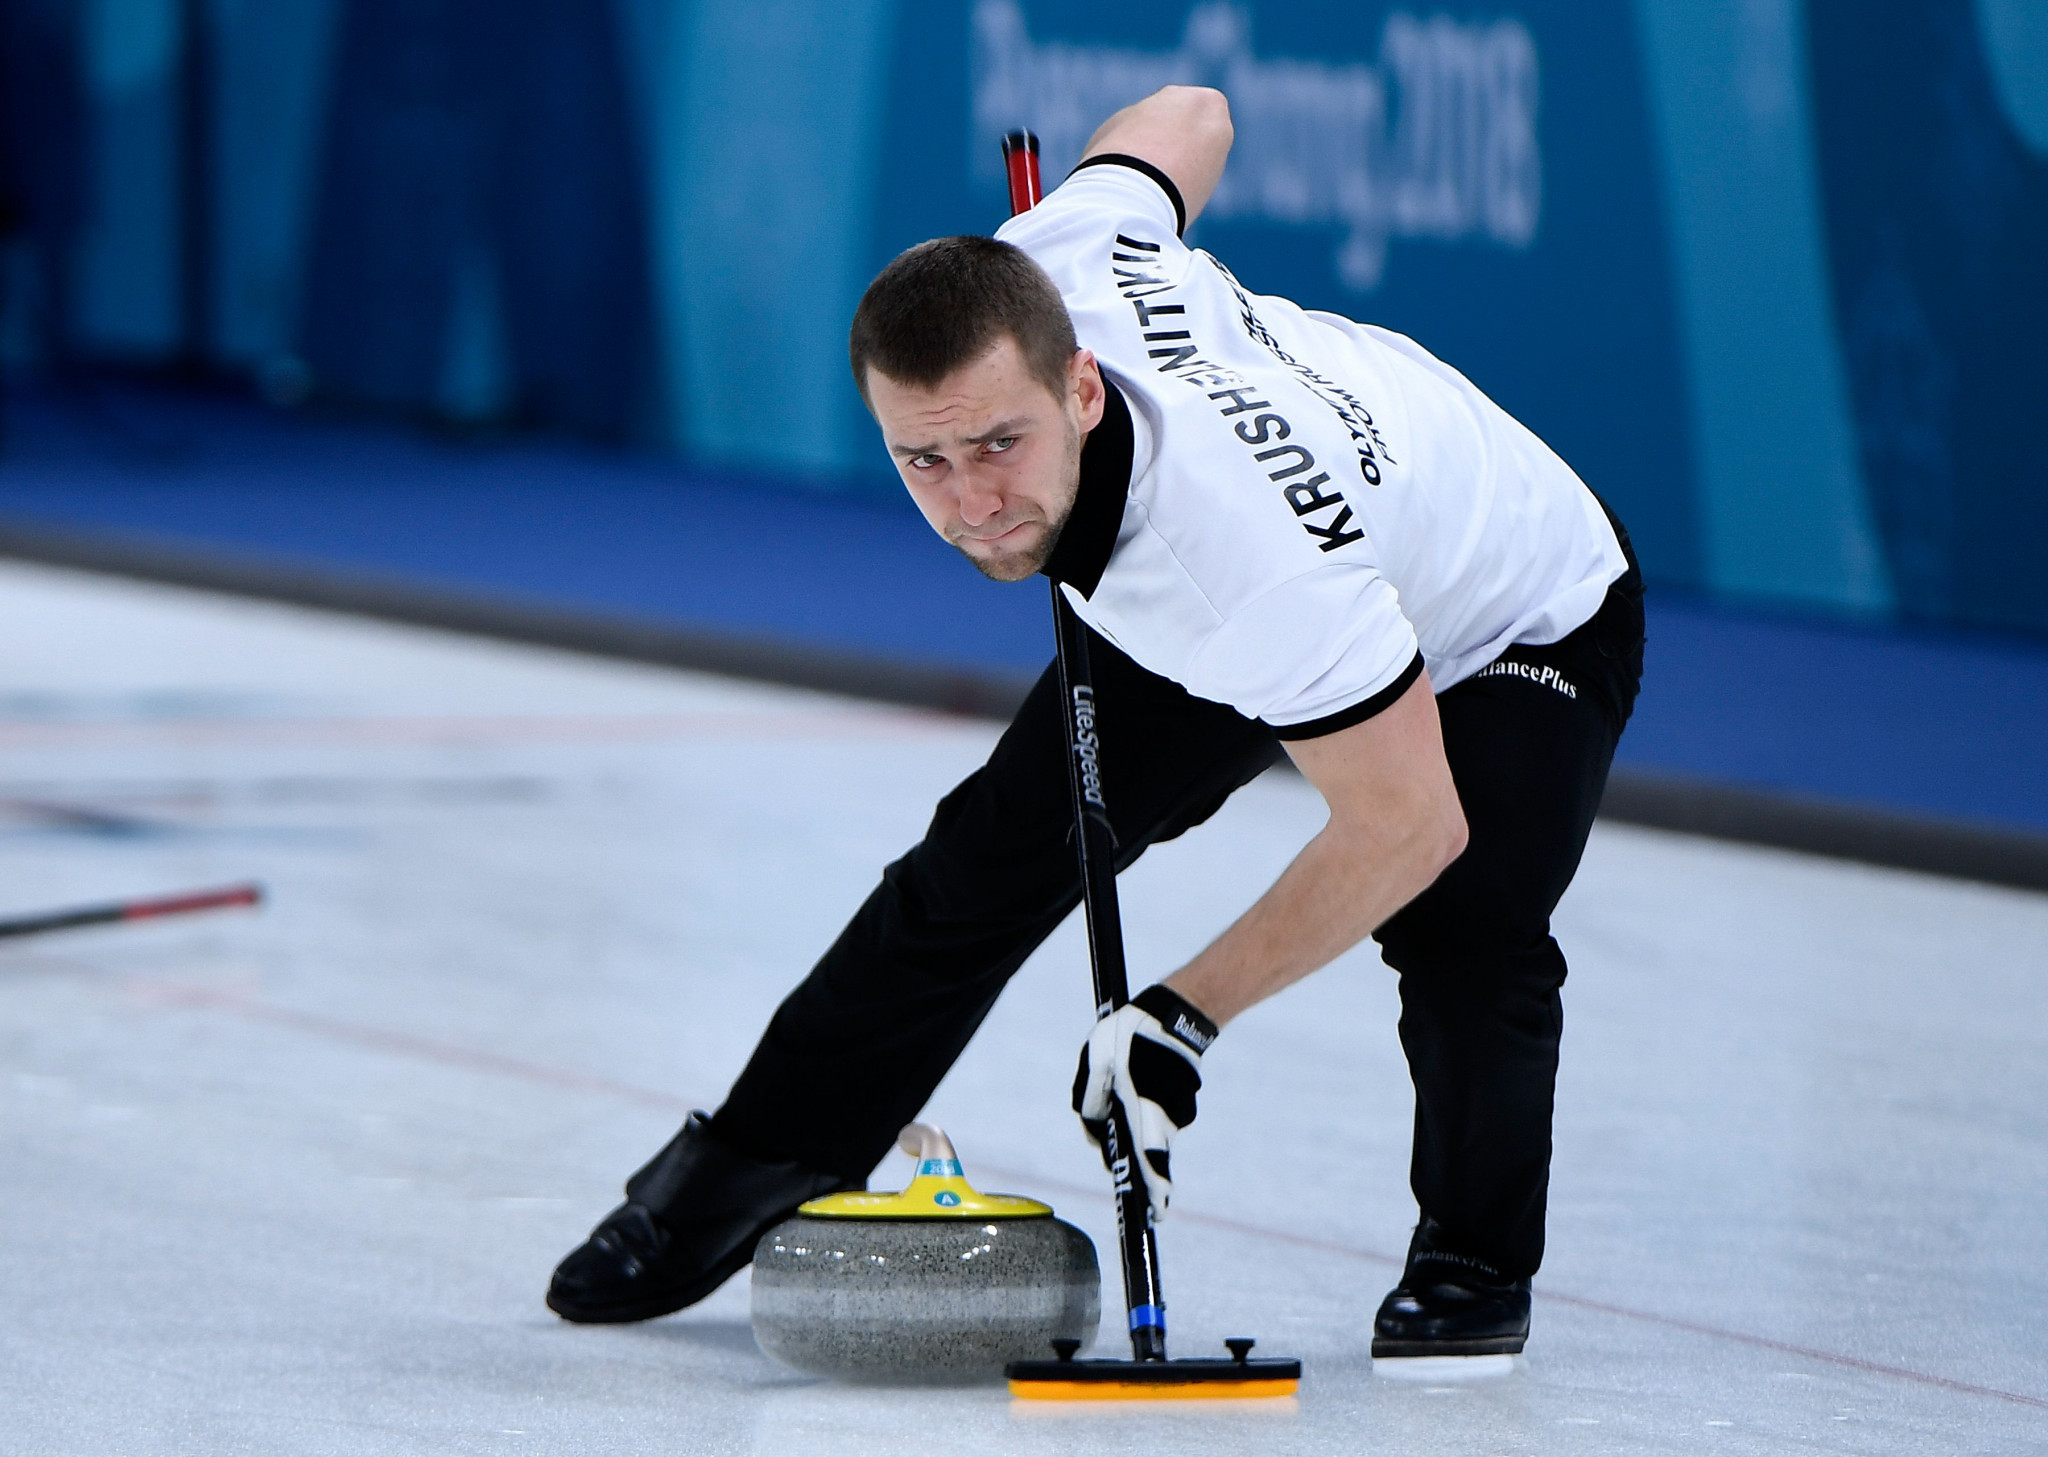 OAR curler Aleksandr Krushelnitckii was one of four athletes to test positive at Pyeongchang 2018 ©Getty Images